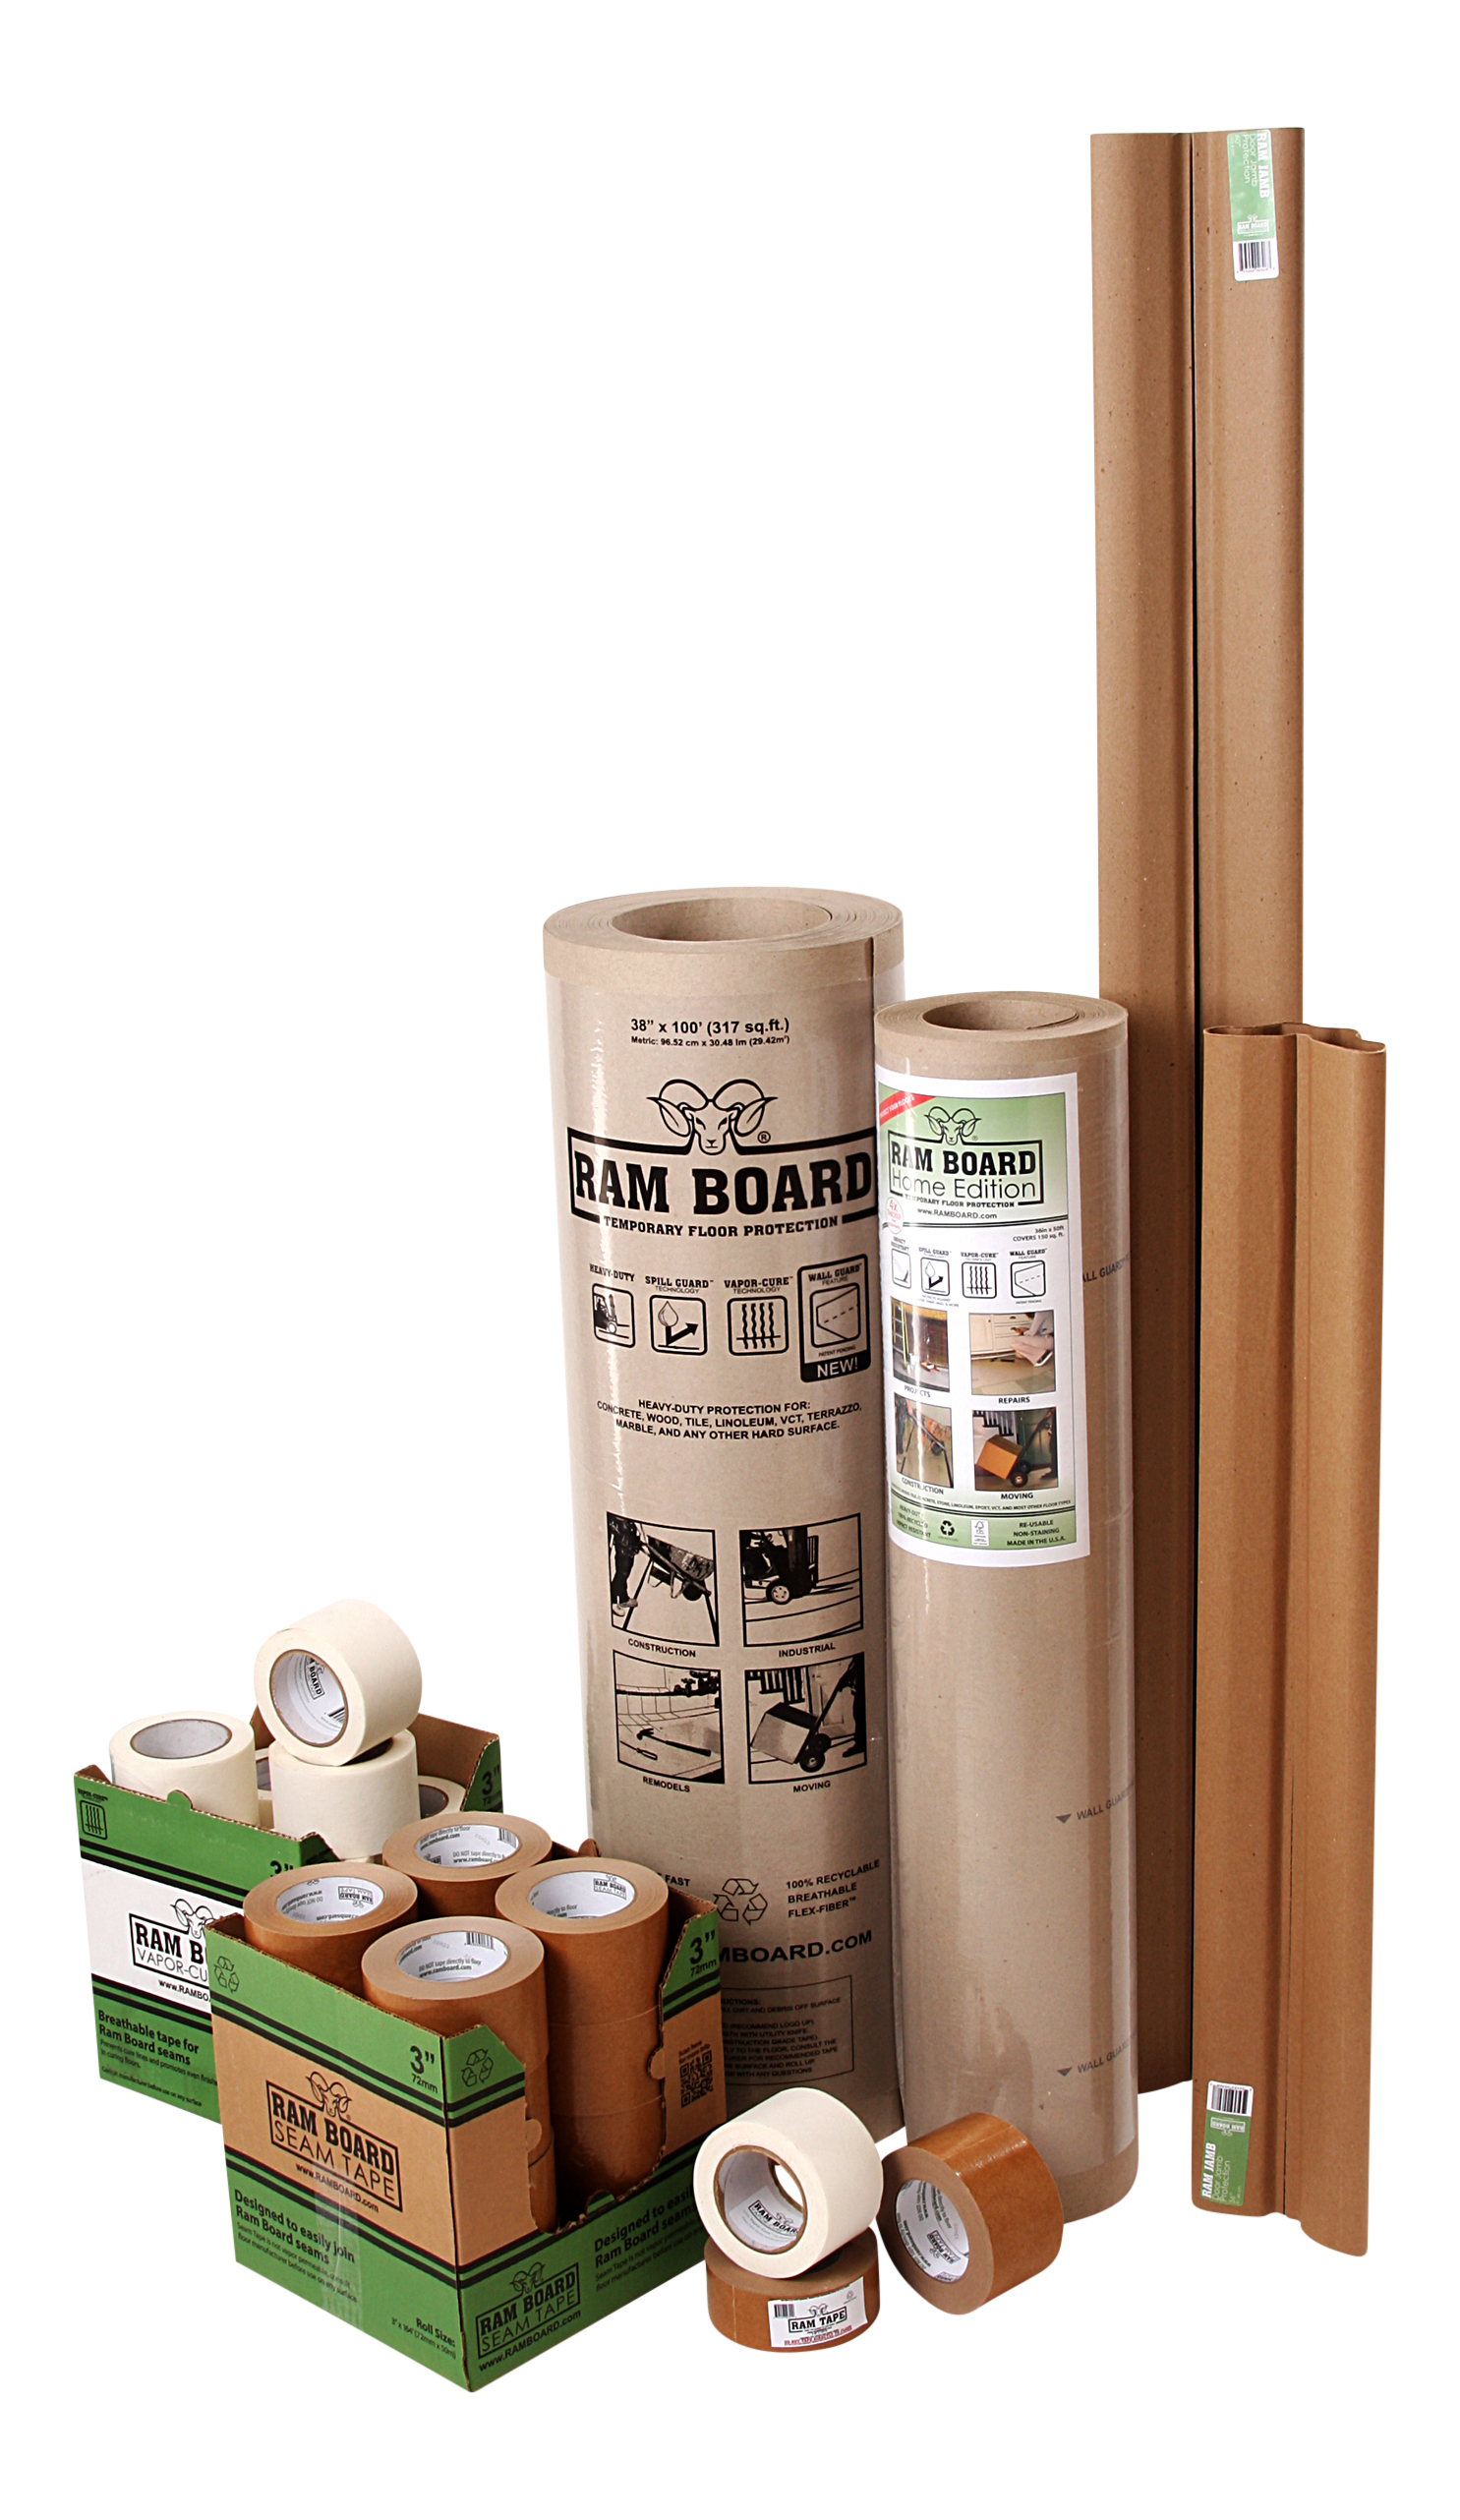 Ram Board Heavy Duty Hard Floor Protection Construction